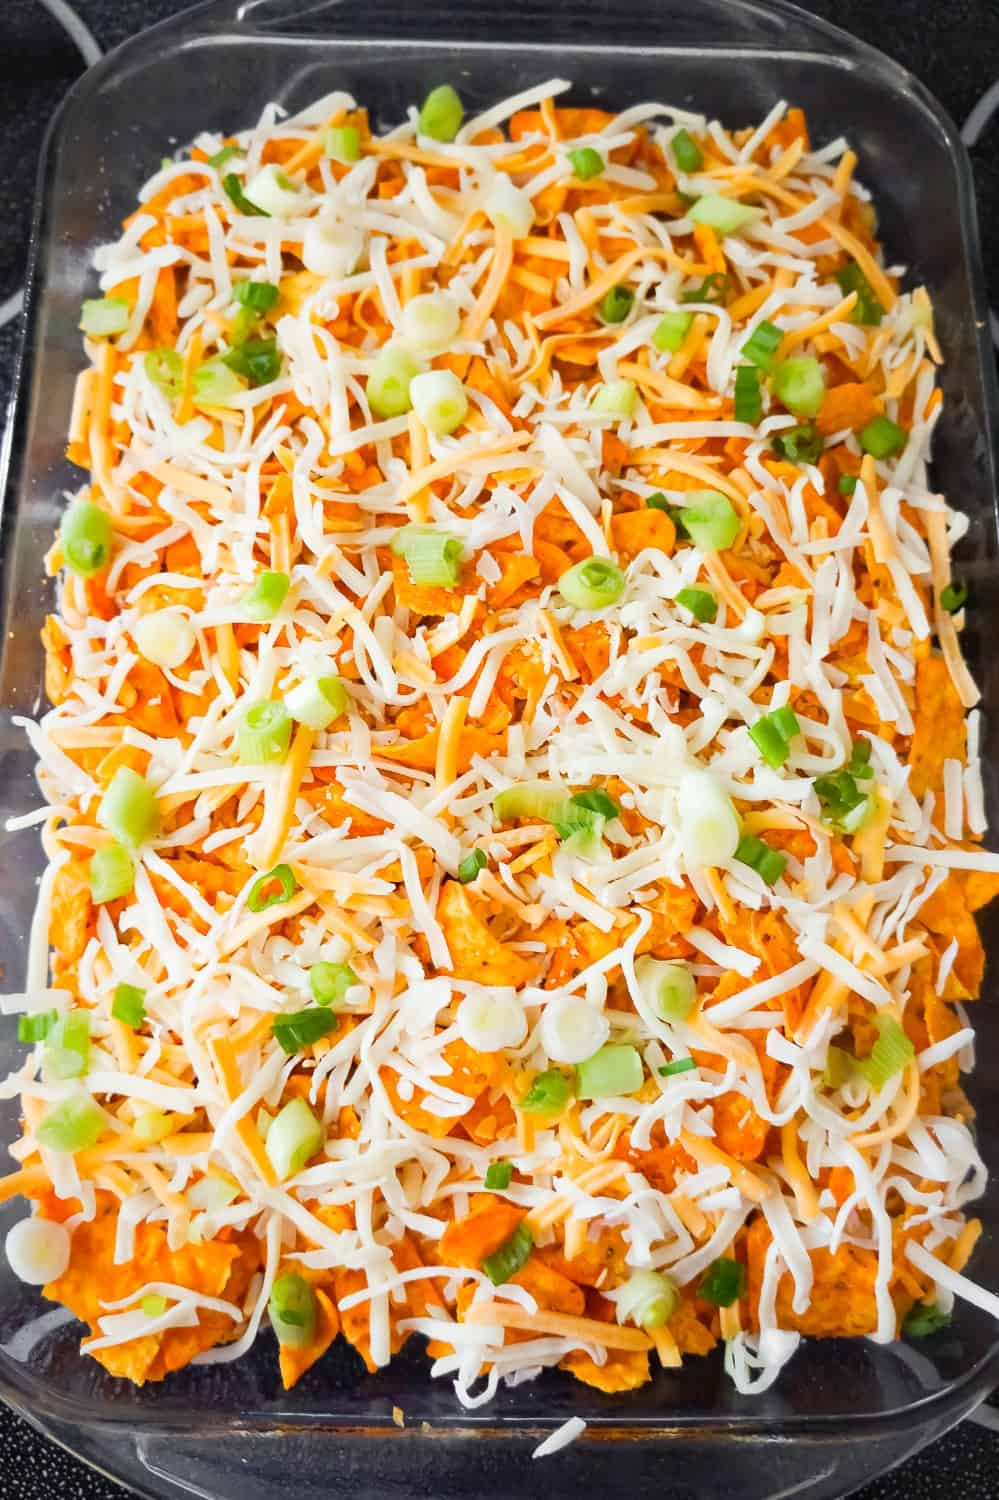 shredded cheese and chopped green onions on top of crumbled Doritos